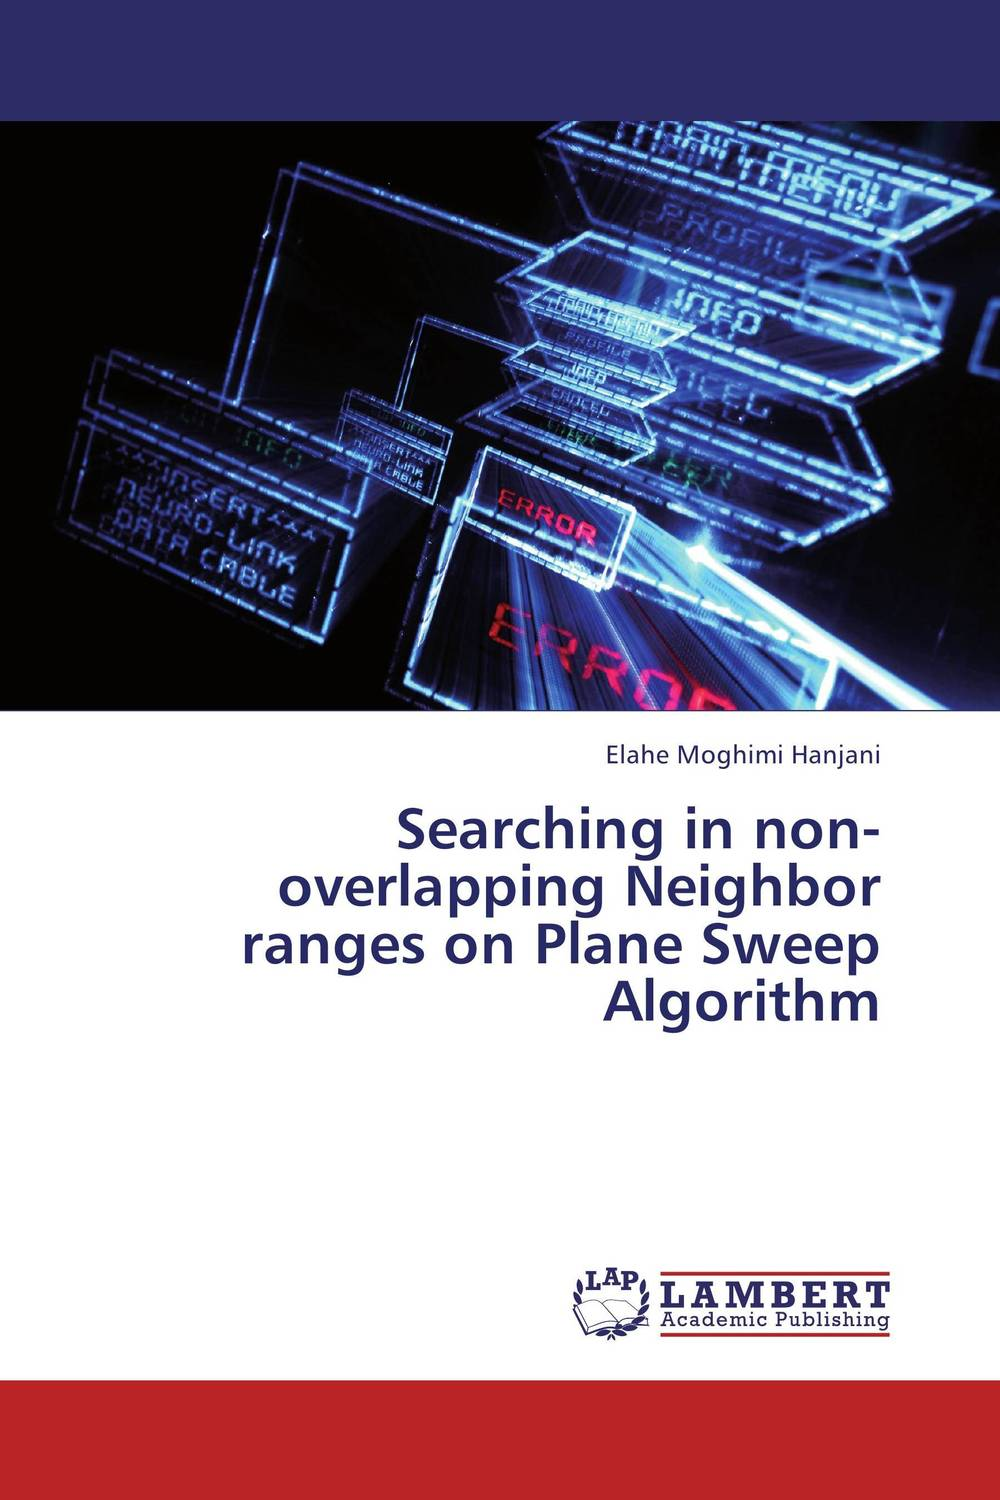 Searching in non-overlapping Neighbor ranges on Plane Sweep Algorithm in search of solutions – a new direction in psychotherapy rev